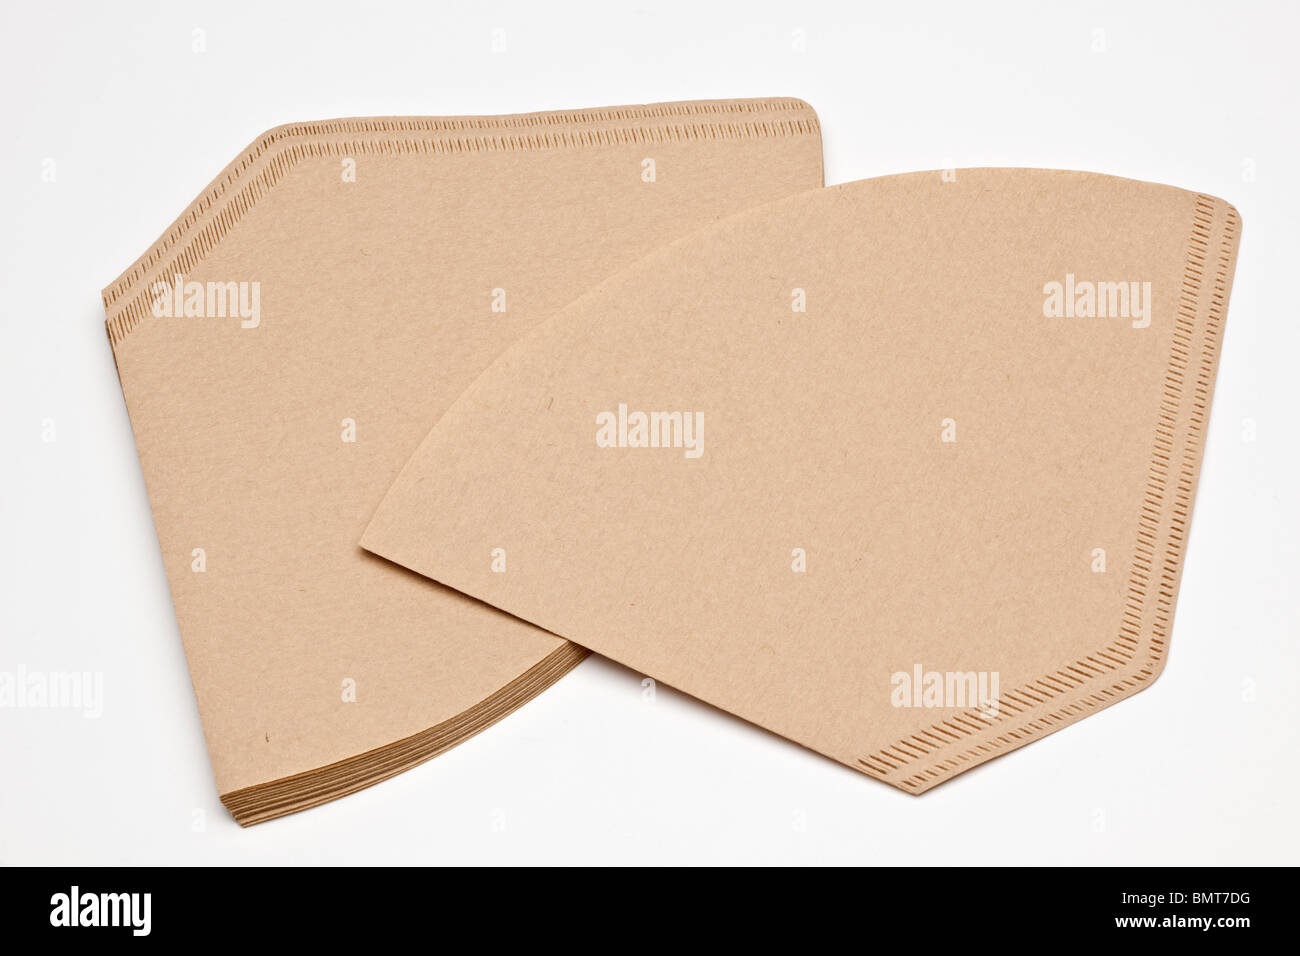 Brown paper folder coffee filter papers - Stock Image